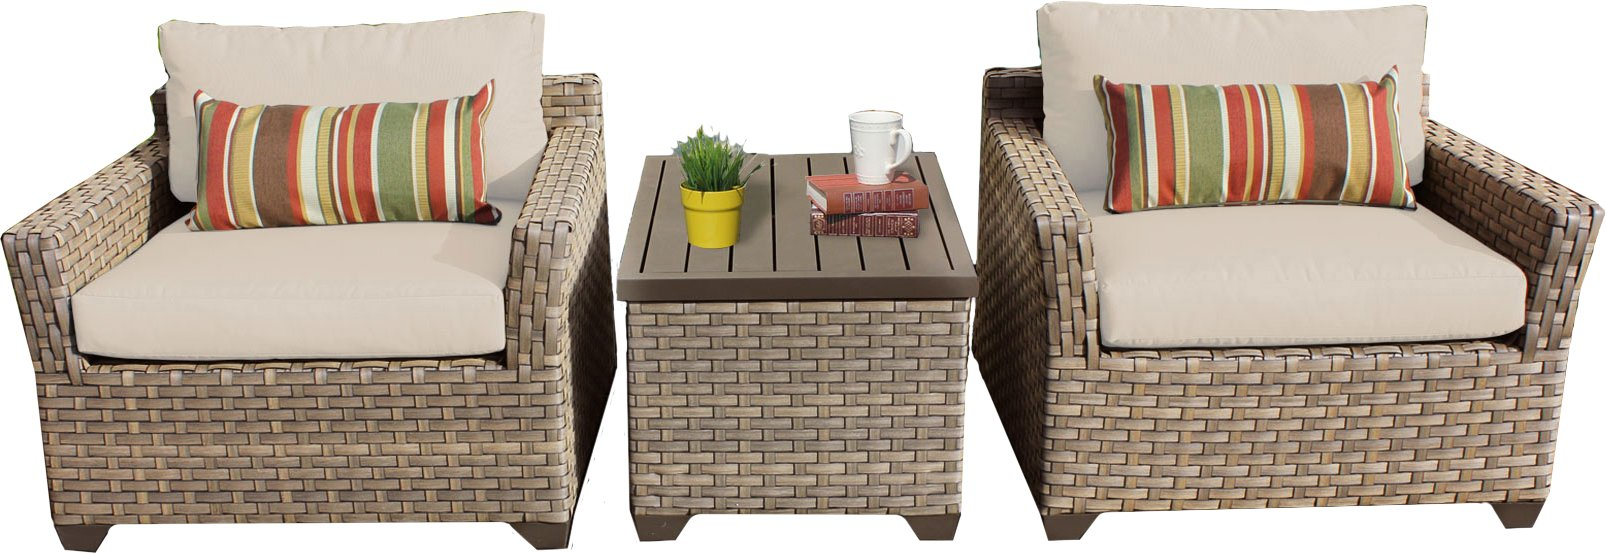 TK Classics Monterey 3 Piece Outdoor Wicker Patio Furniture Set 03a, Beige - FULLY ASSEMBLED - Seating area is ready to use and enjoy with family and friends Cushions - Easy Care plush cushions for a luxurious look and feel Cushion Covers - Washable and zippered for easy cleaning (air dry only) - patio-furniture, patio, conversation-sets - 71eEVRpT2pL -